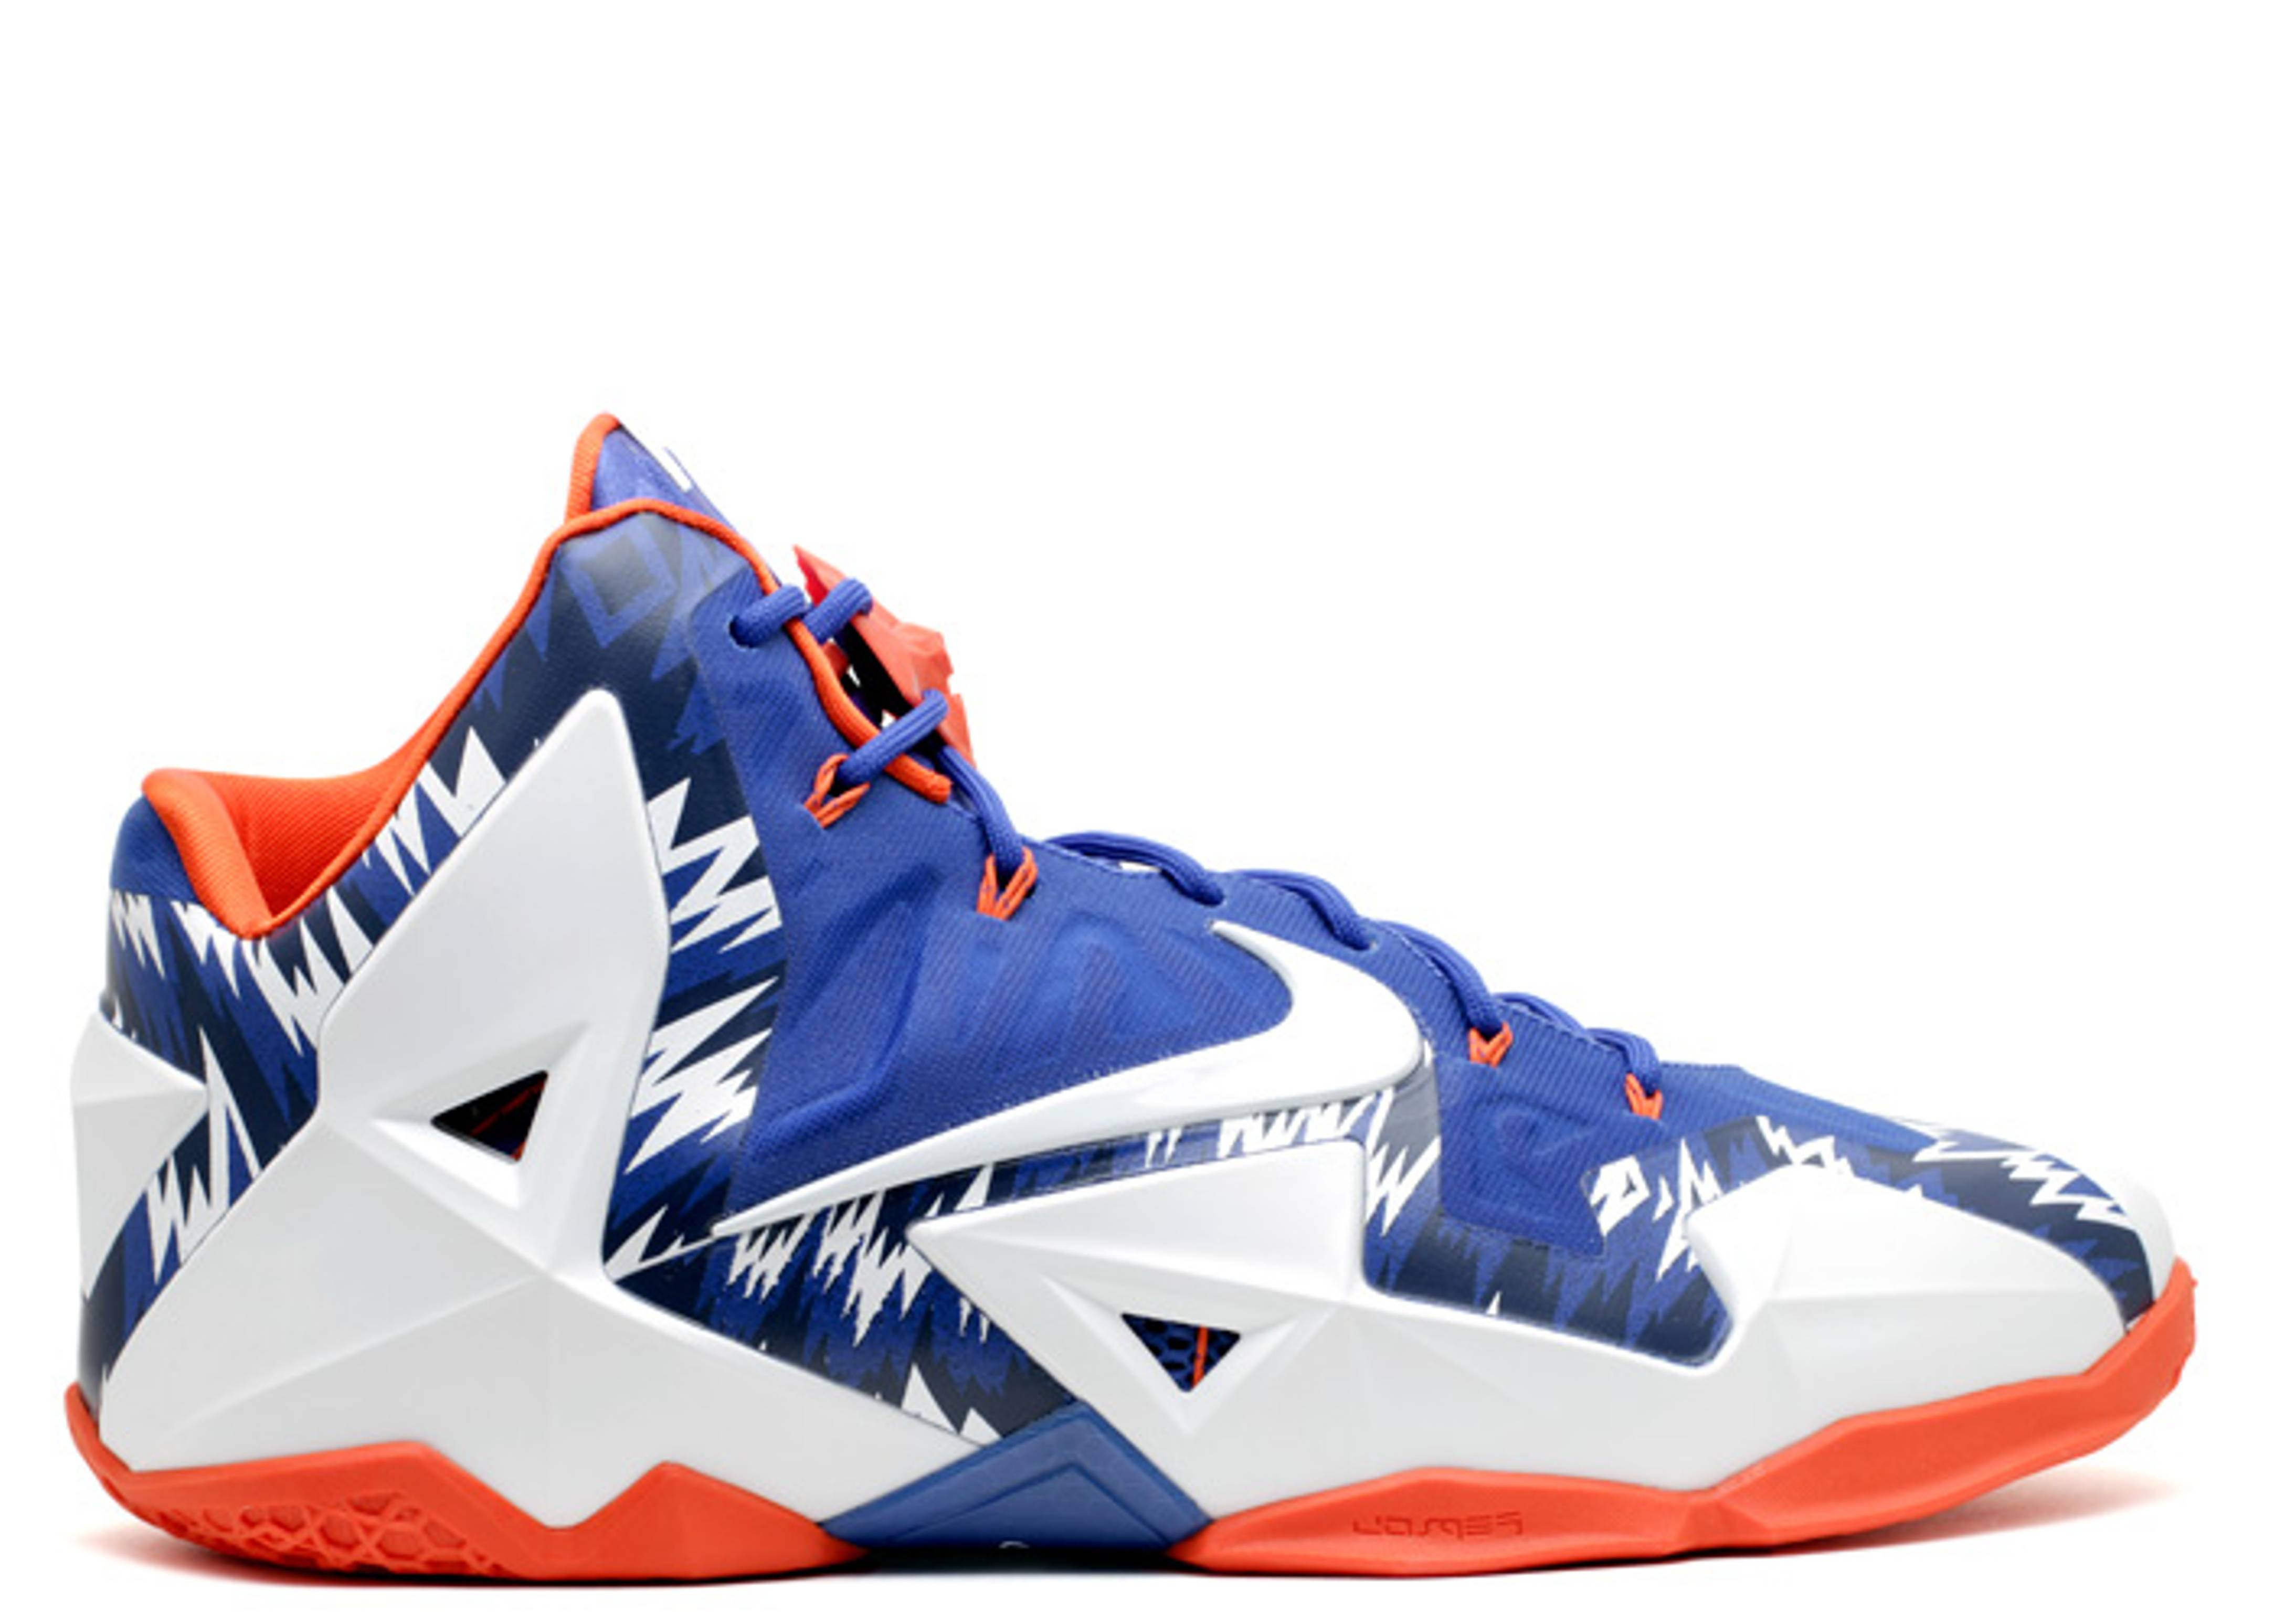 014f80fe8ad2e ... Look Nike Lebron 11 Elite Source abt lrj23 lebron 11 .